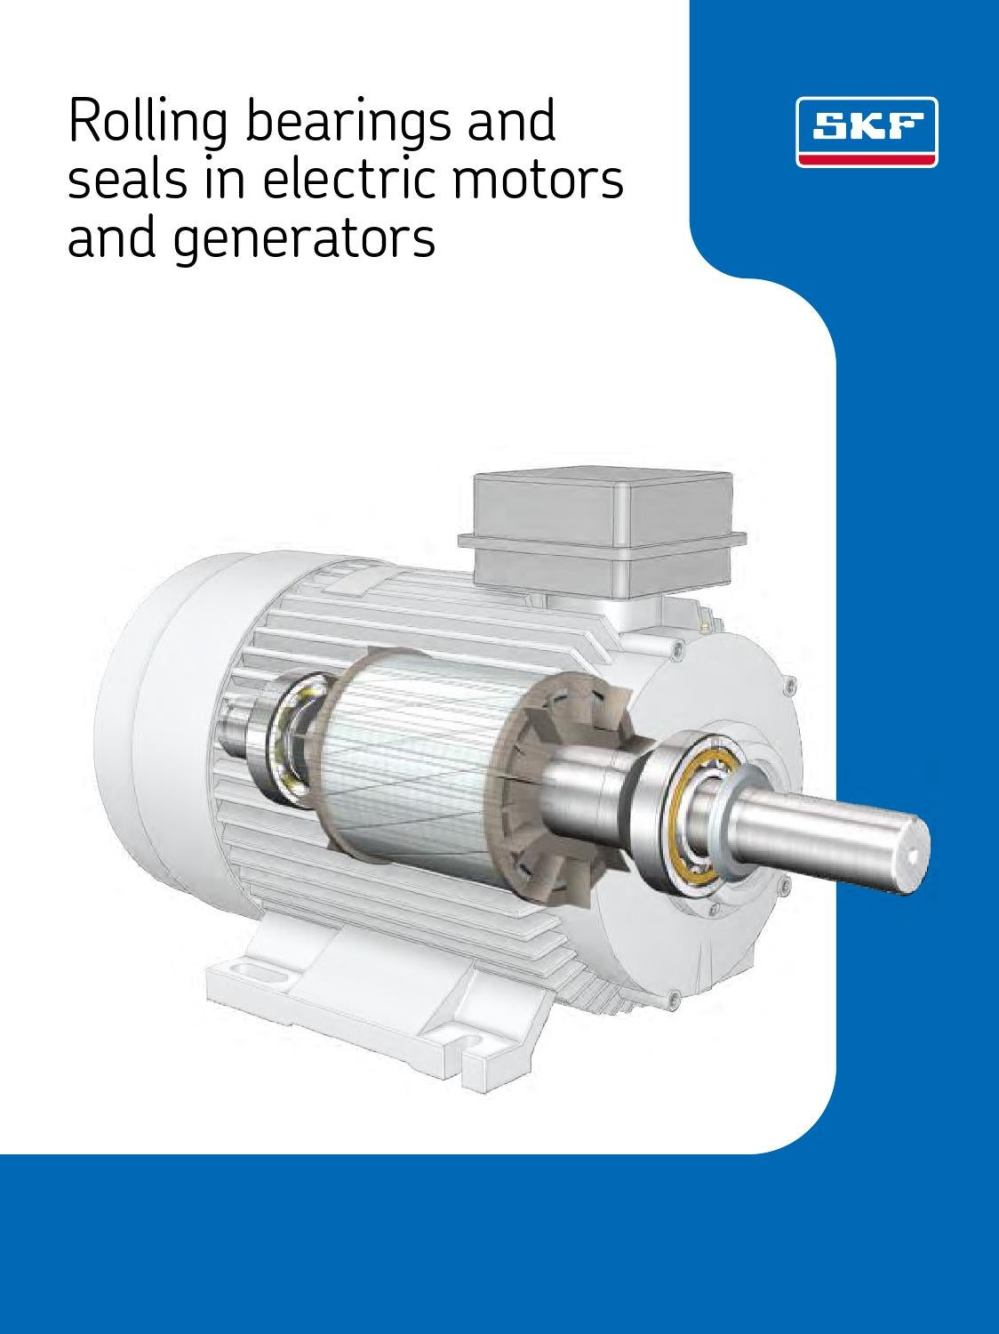 medium resolution of skf rolling bearings seals in electric motors generators en by eriks nederland issuu